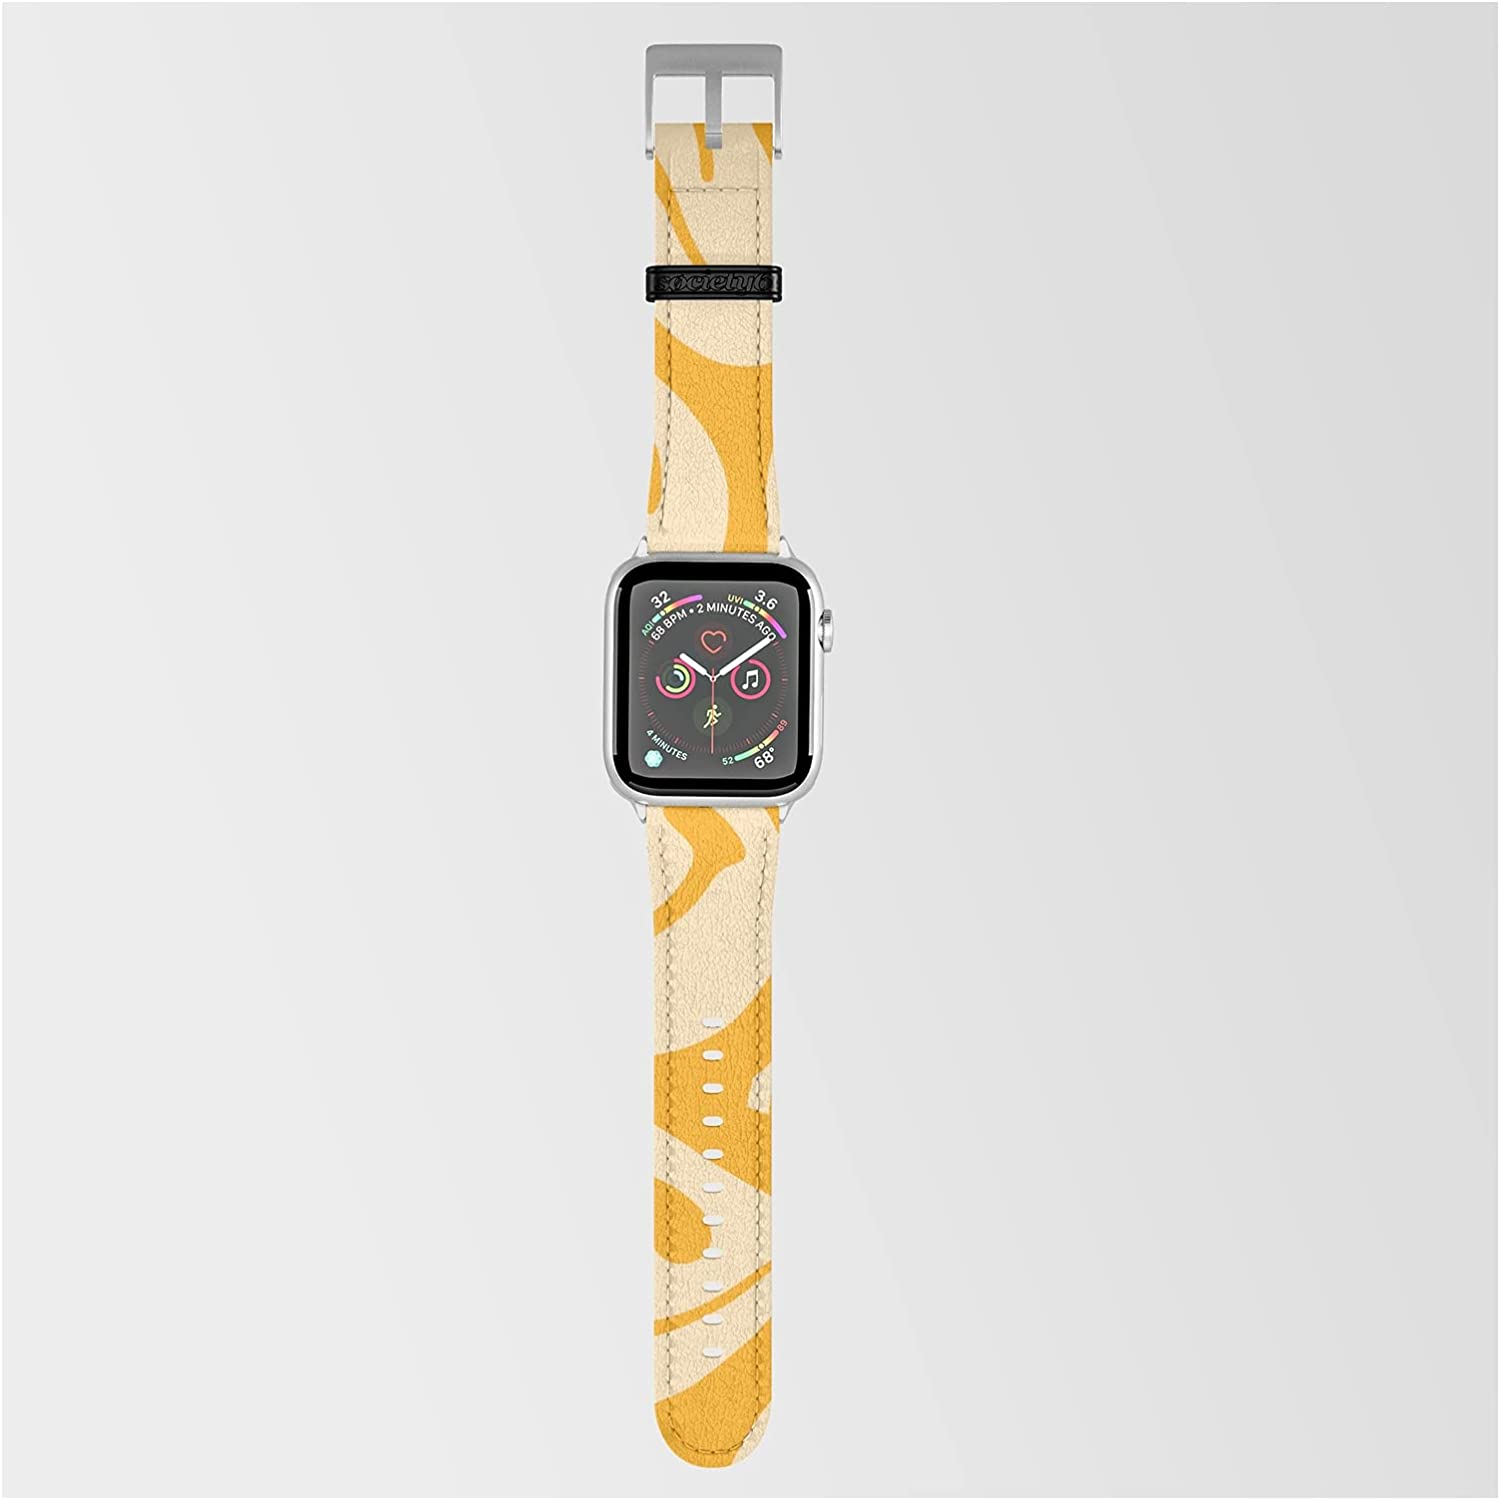 Liquify Honey by More Jamie Smartwatch Compat Preston Tampa Mall unisex Band on